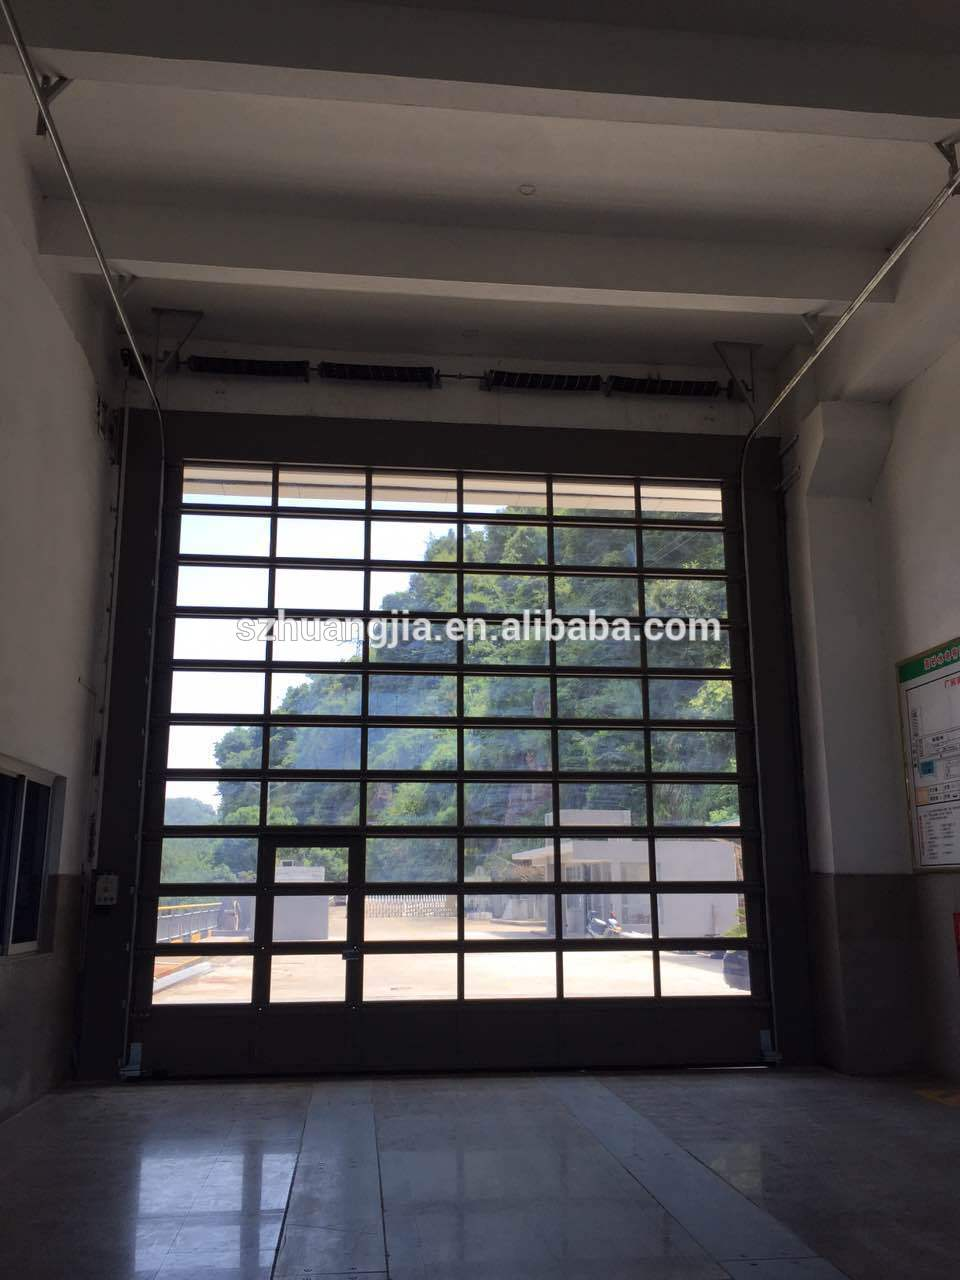 Electric heavy duty glass panel sectional garage door with for Sectional glass garage door